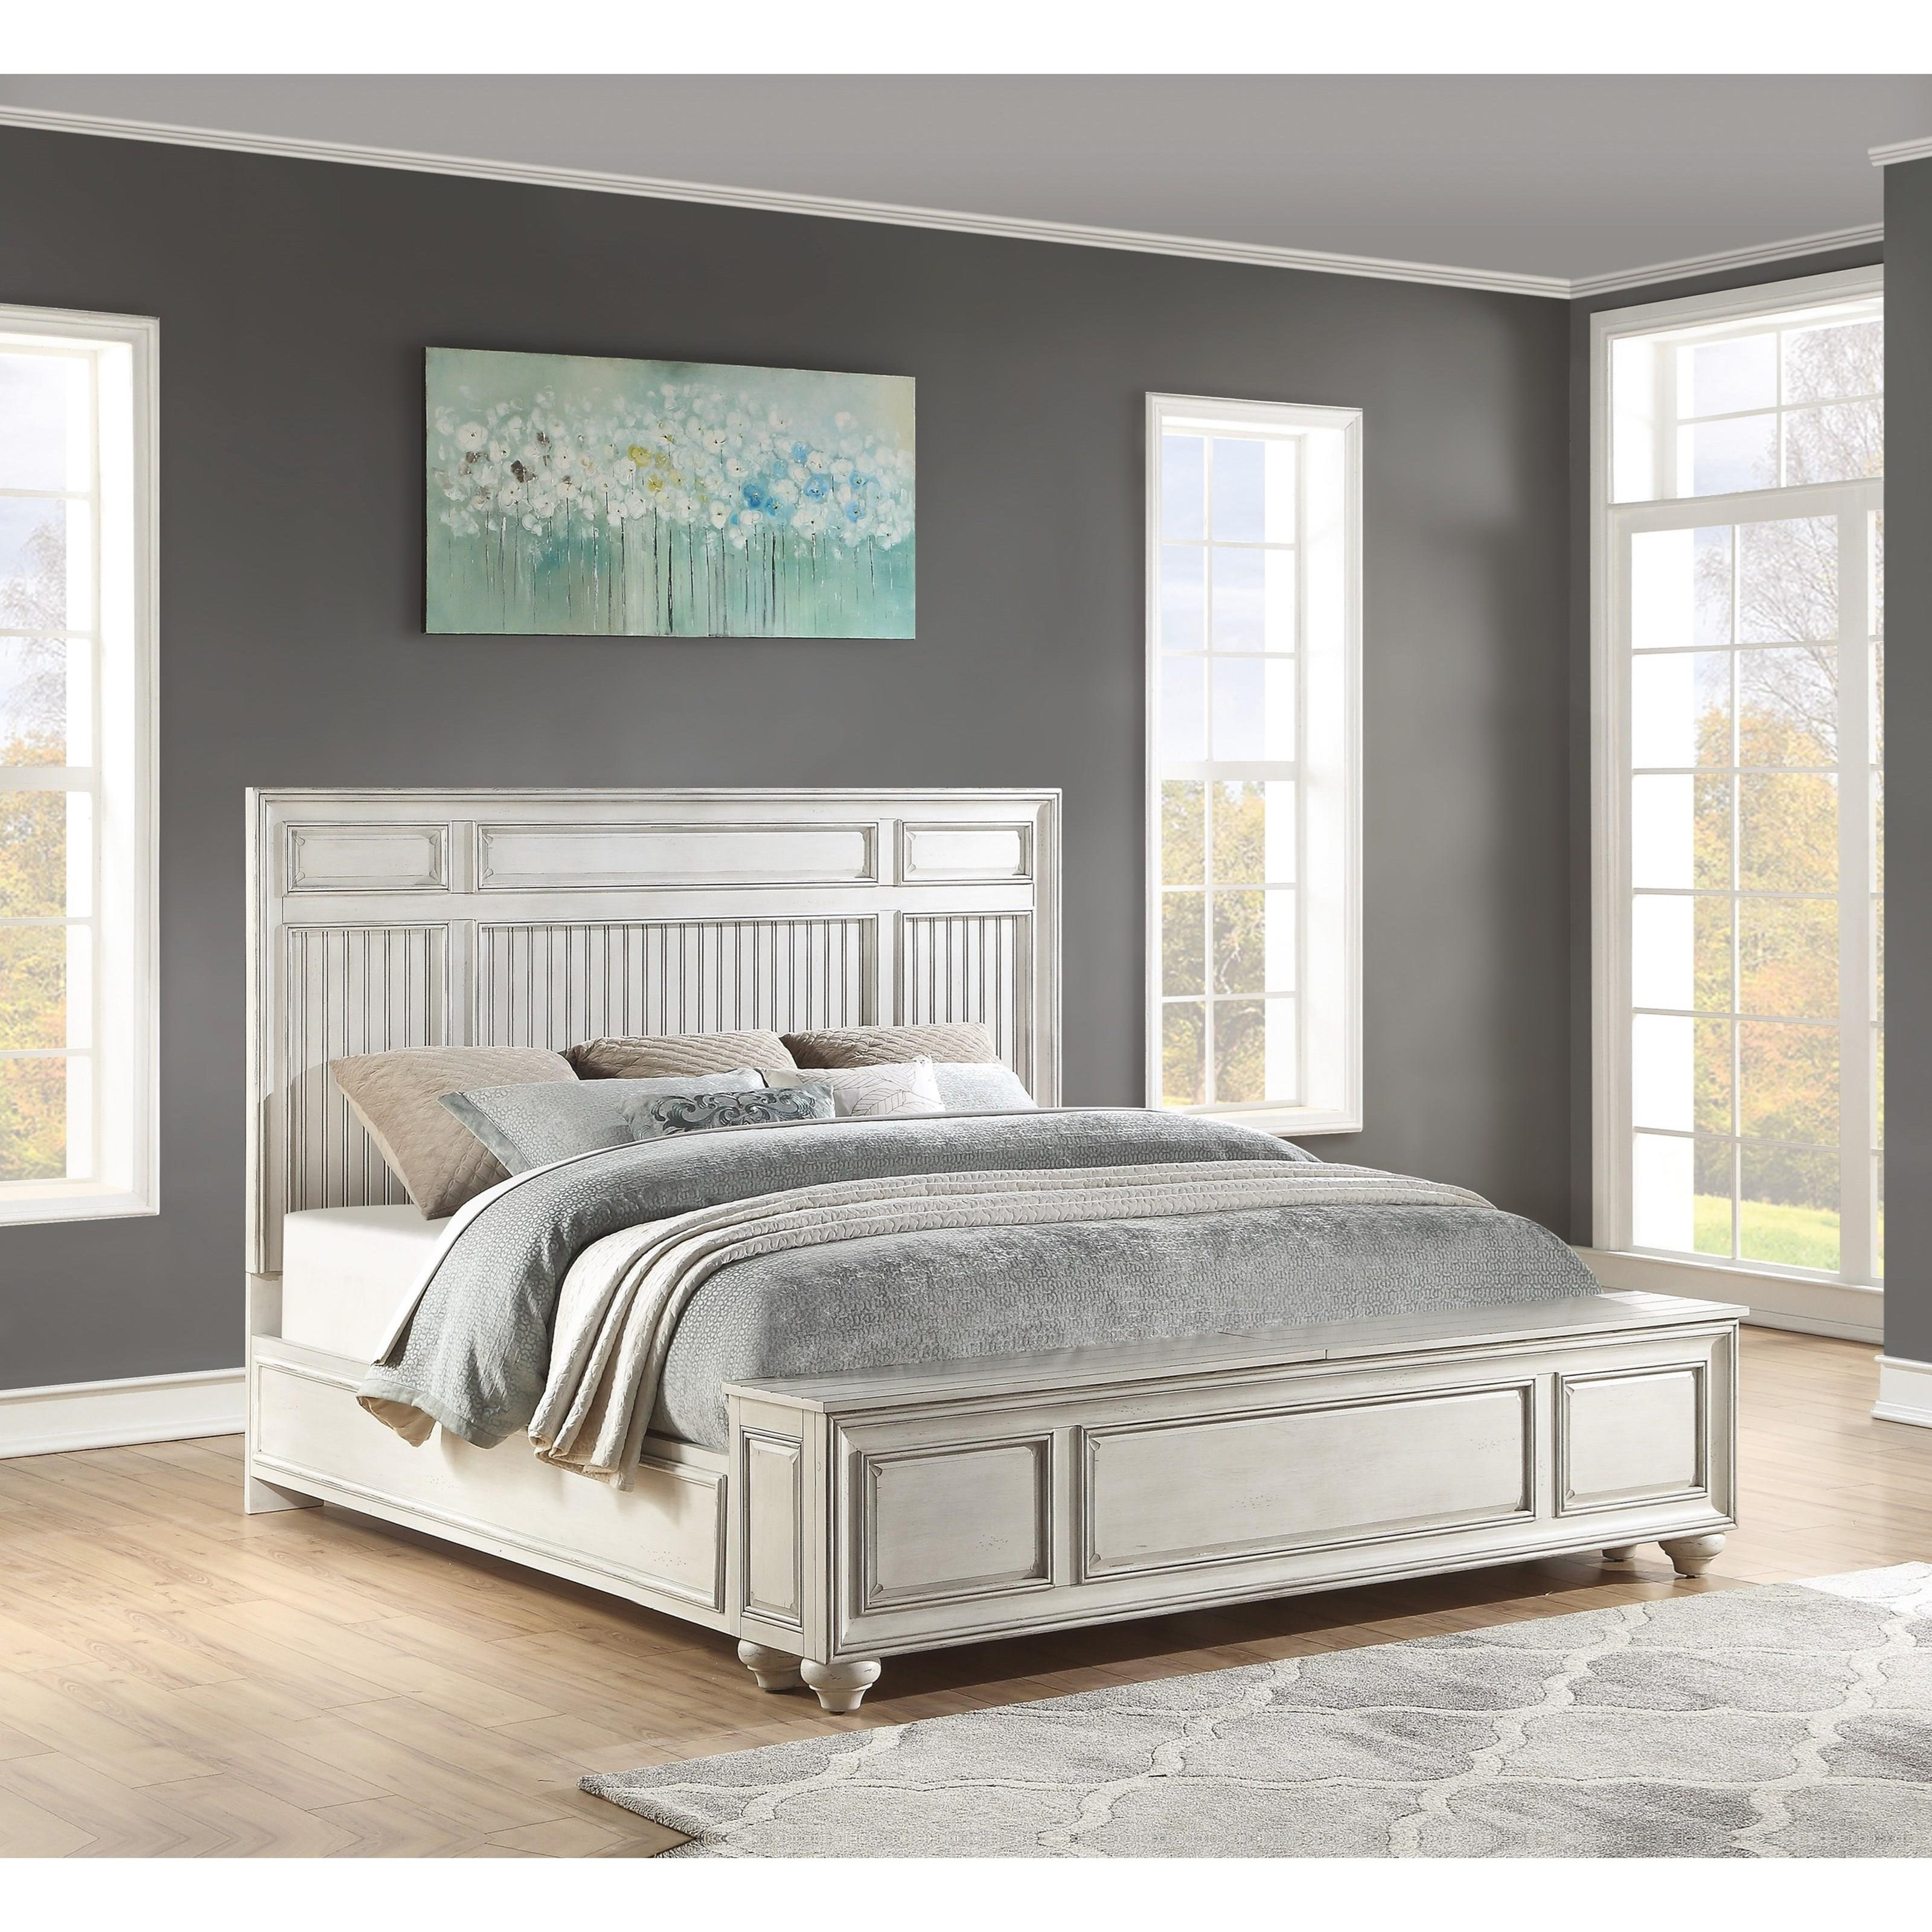 Harmony King Panel Storage Bed by Flexsteel Wynwood Collection at Furniture Superstore - Rochester, MN